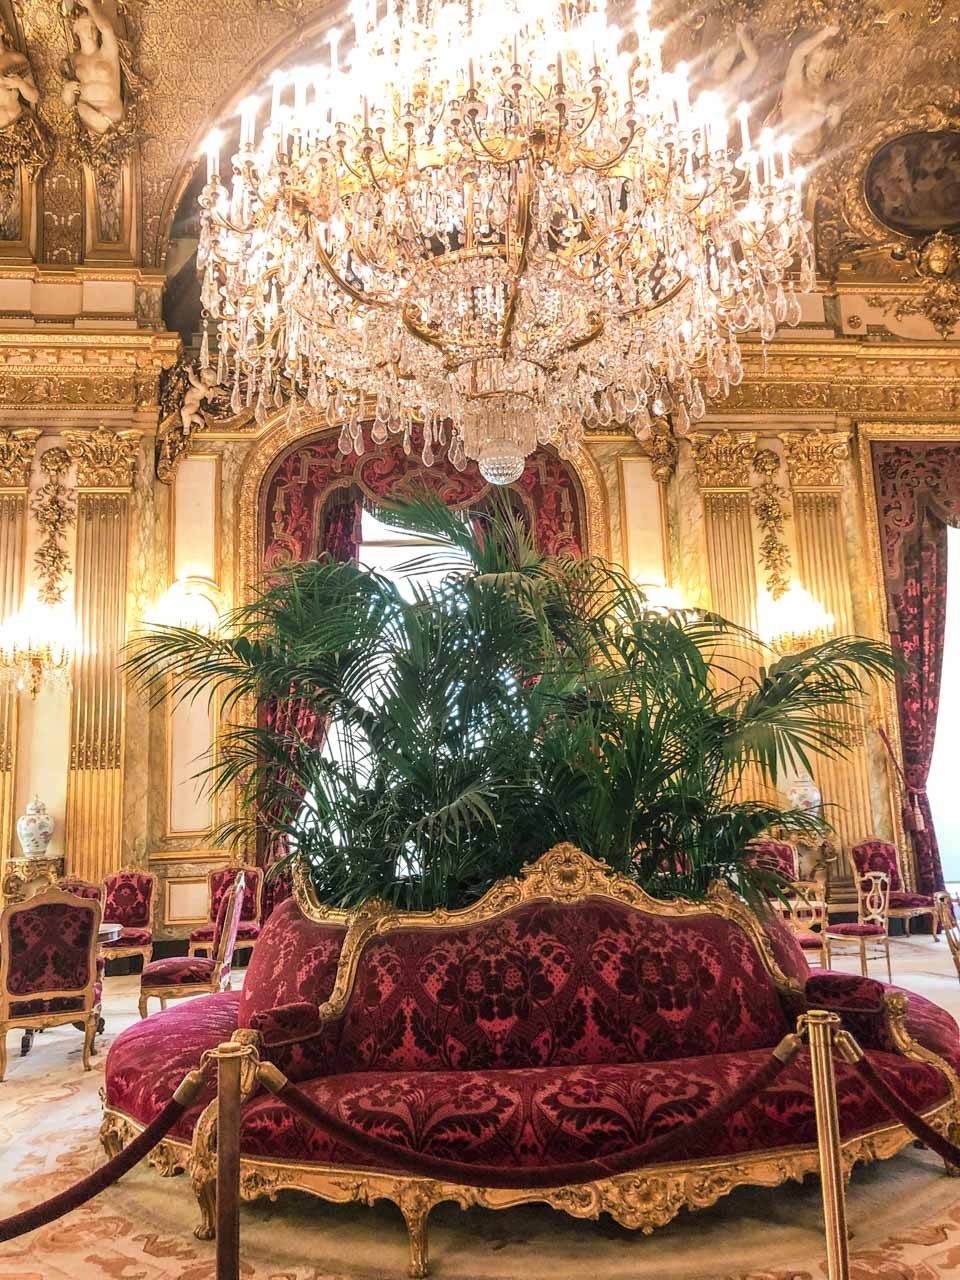 State Drawing Room with a huge golden chandelier and royal furniture including a red borne upholstered seat in the Napoleon III Apartments located in the Richelieu Wing in the Louvre Museum in Paris, France